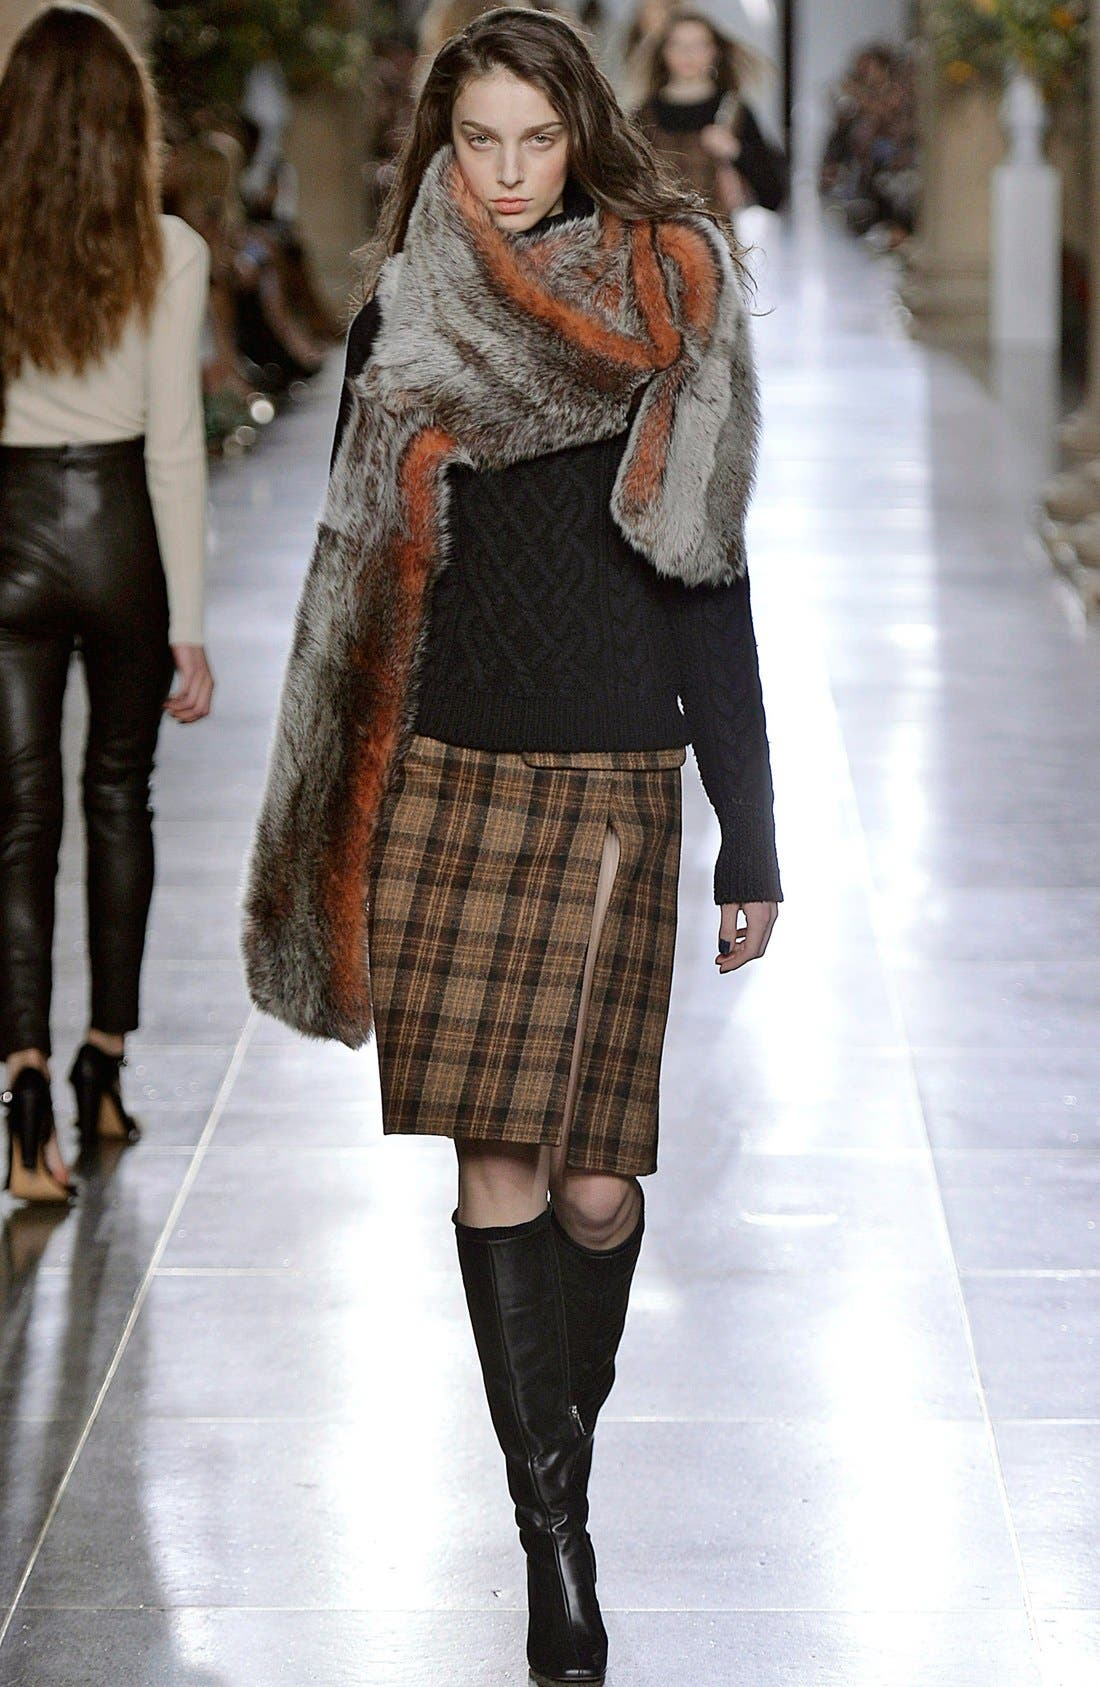 Alternate Image 1 Selected - Topshop Unique 'Inverness' Plaid A-Line Skirt